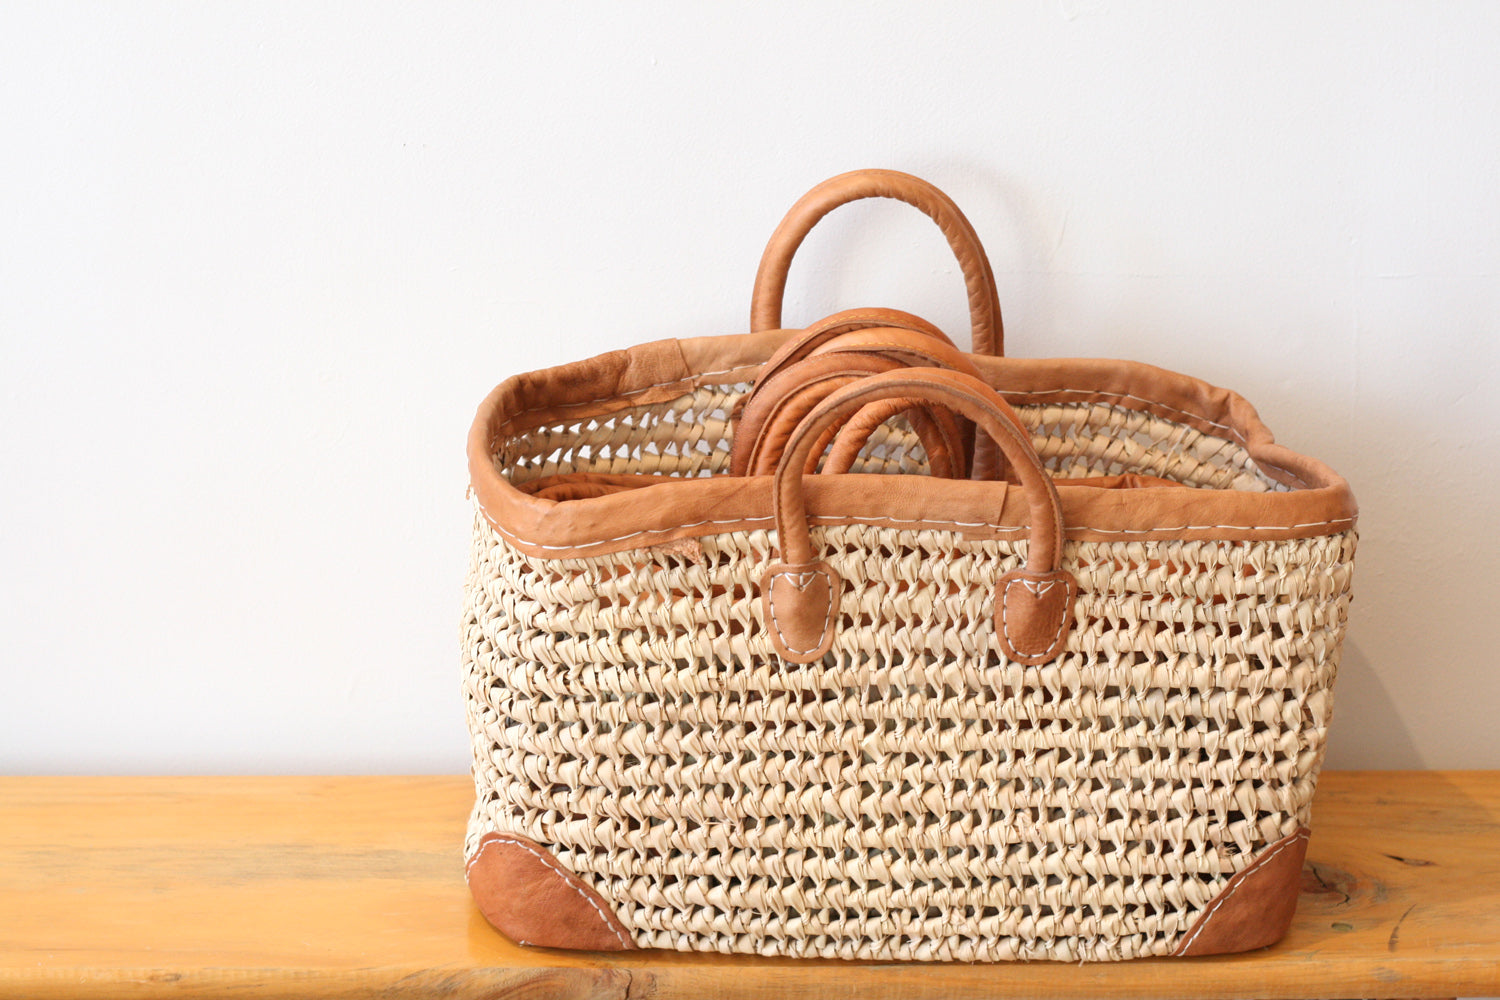 Leather Trimmed Market & Storage Baskets